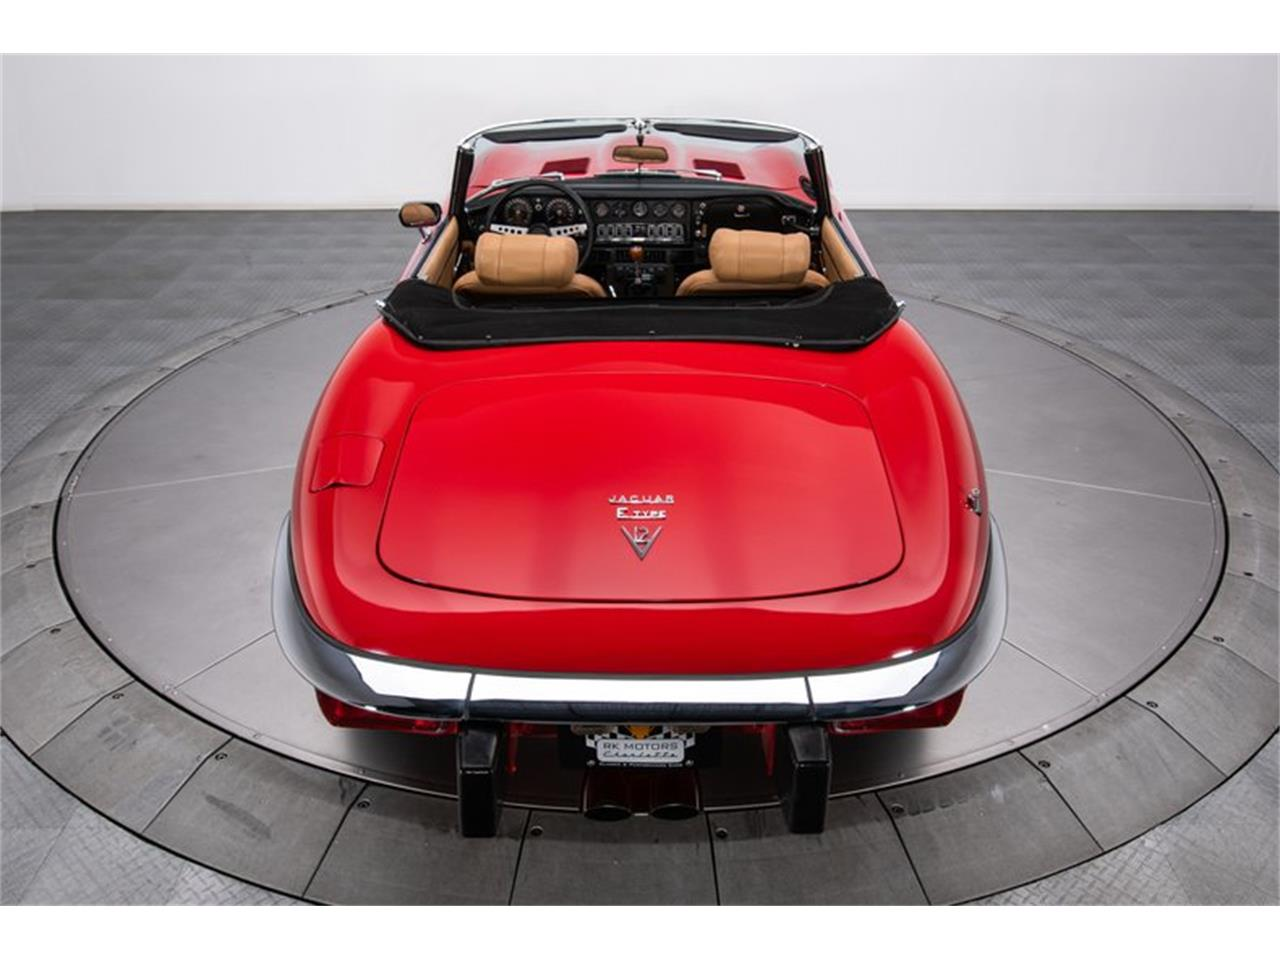 Large Picture of 1974 Jaguar E-Type located in North Carolina - $89,900.00 - QEN6